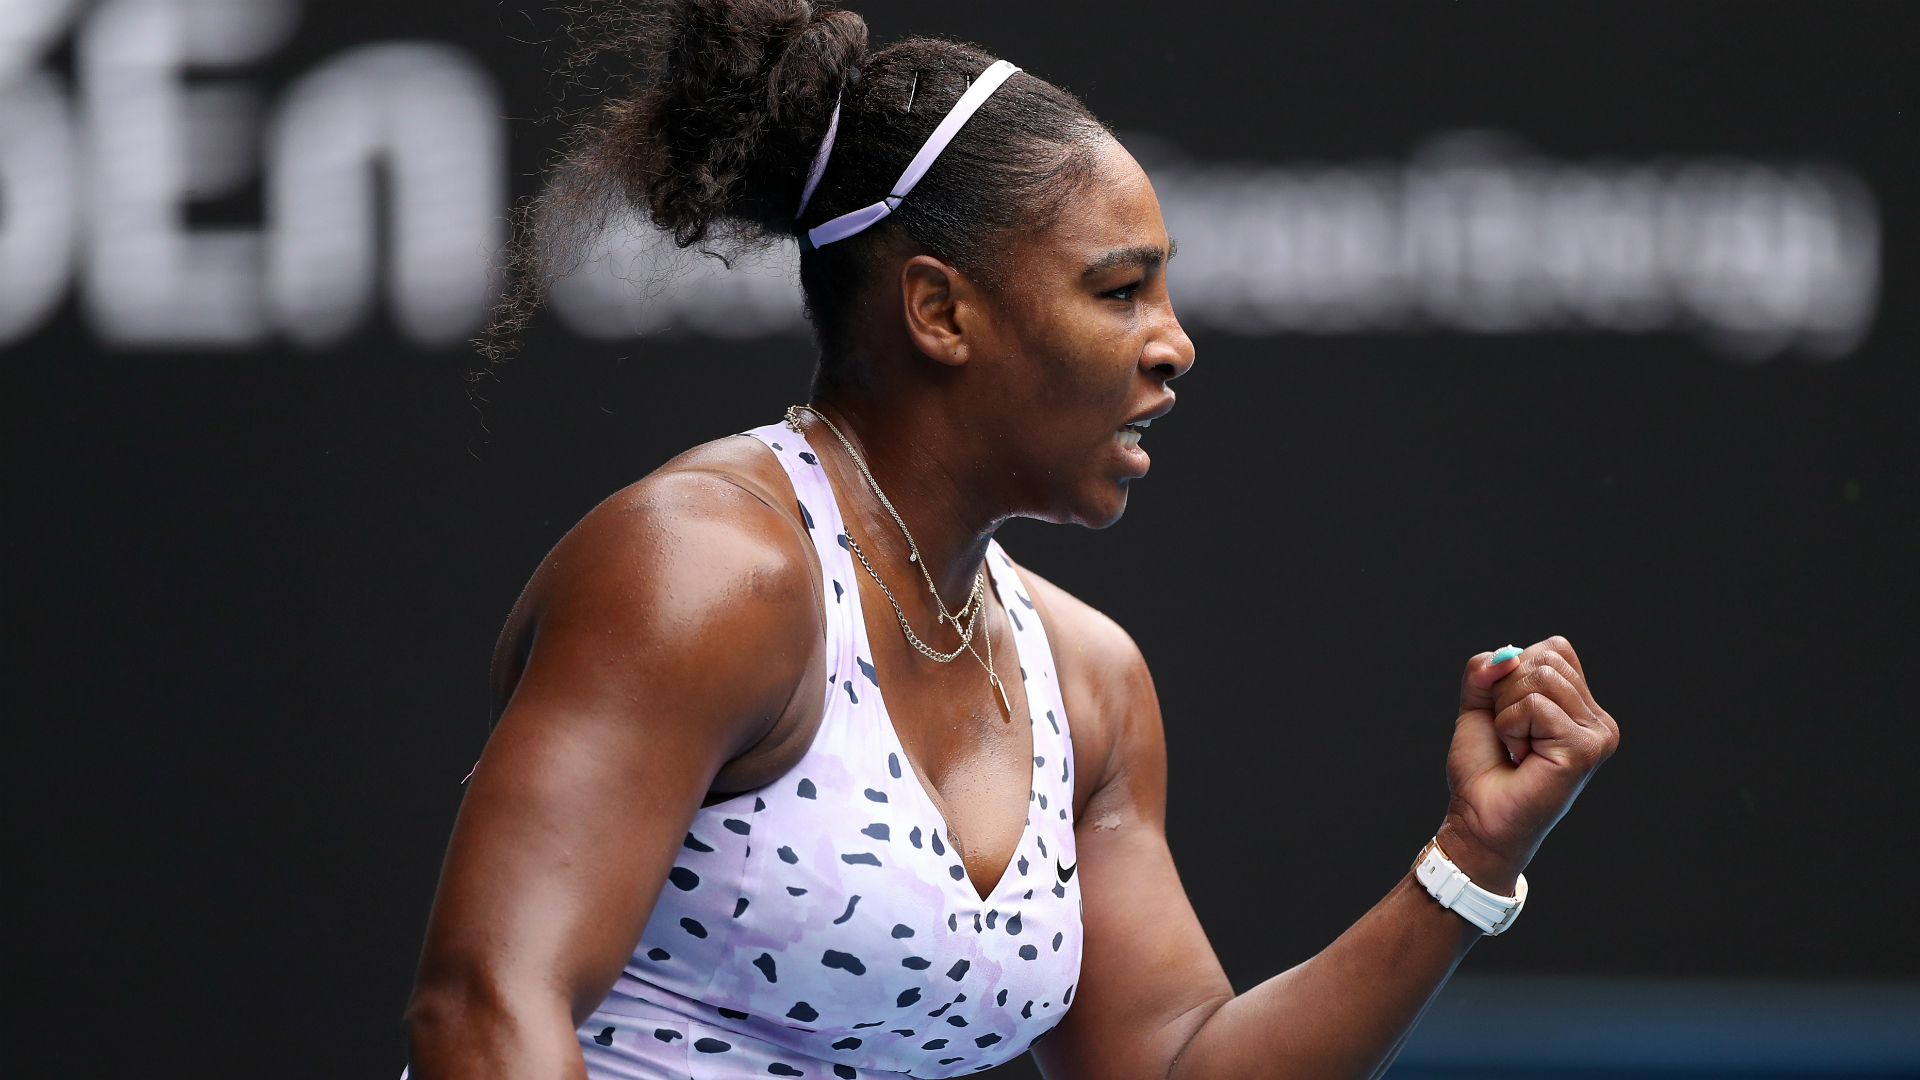 Serena is the greatest and can equal Court - Becker